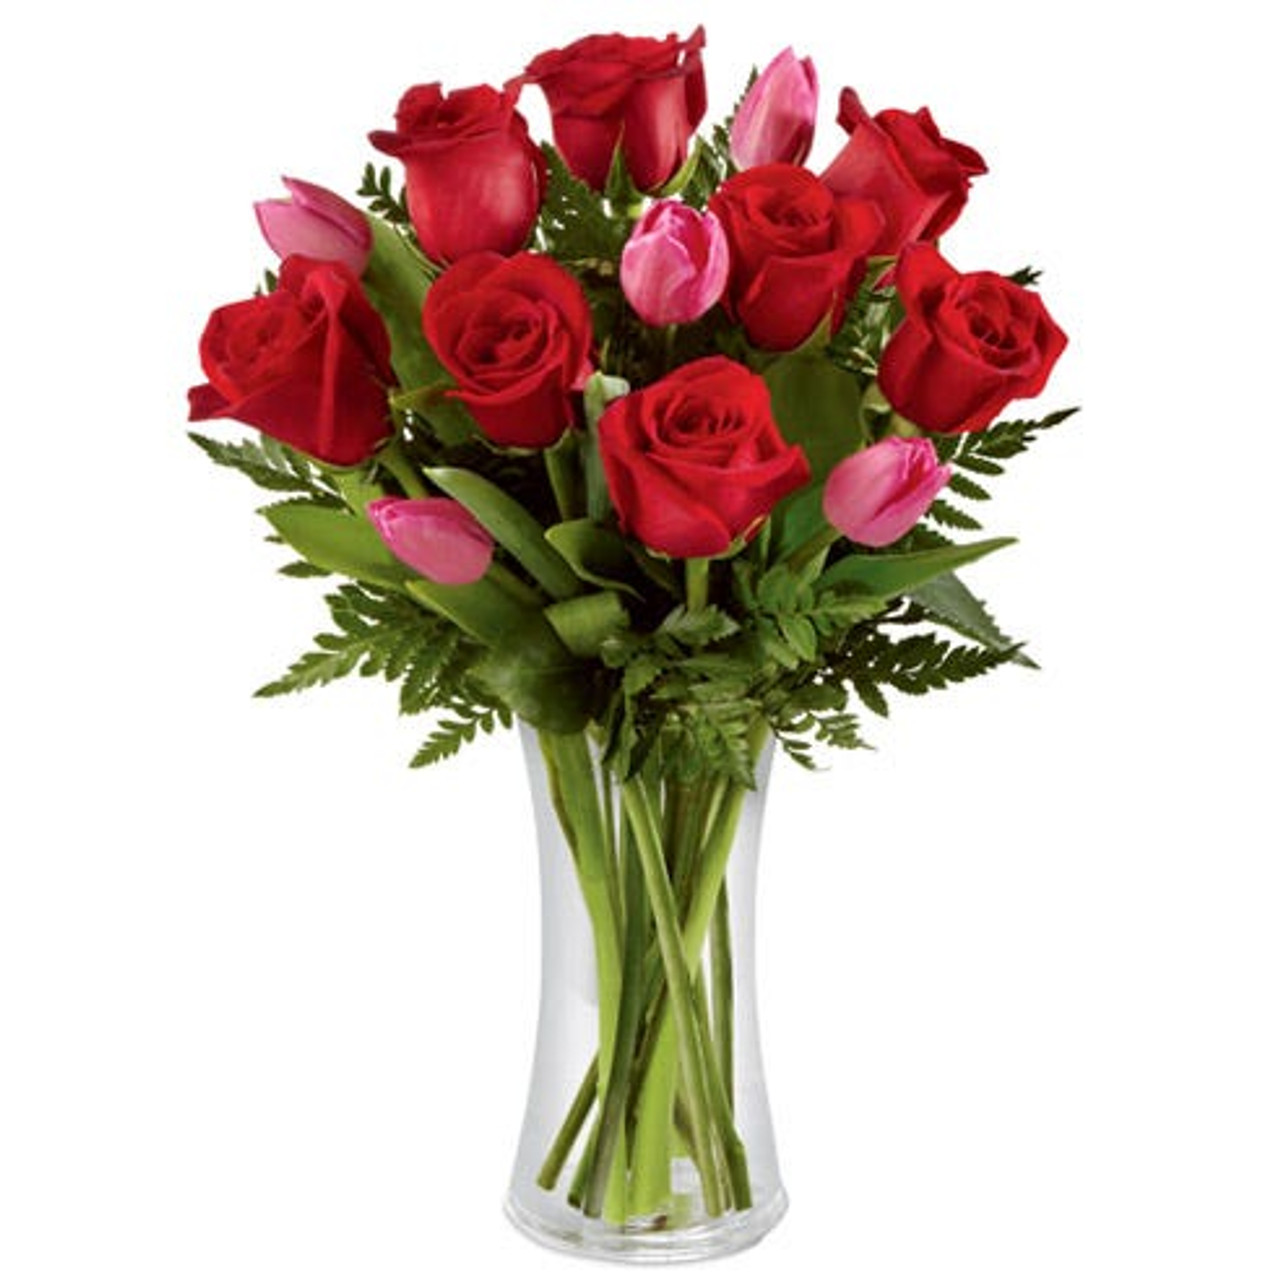 12 Red Roses & 5 Pink Tulips Bouquet